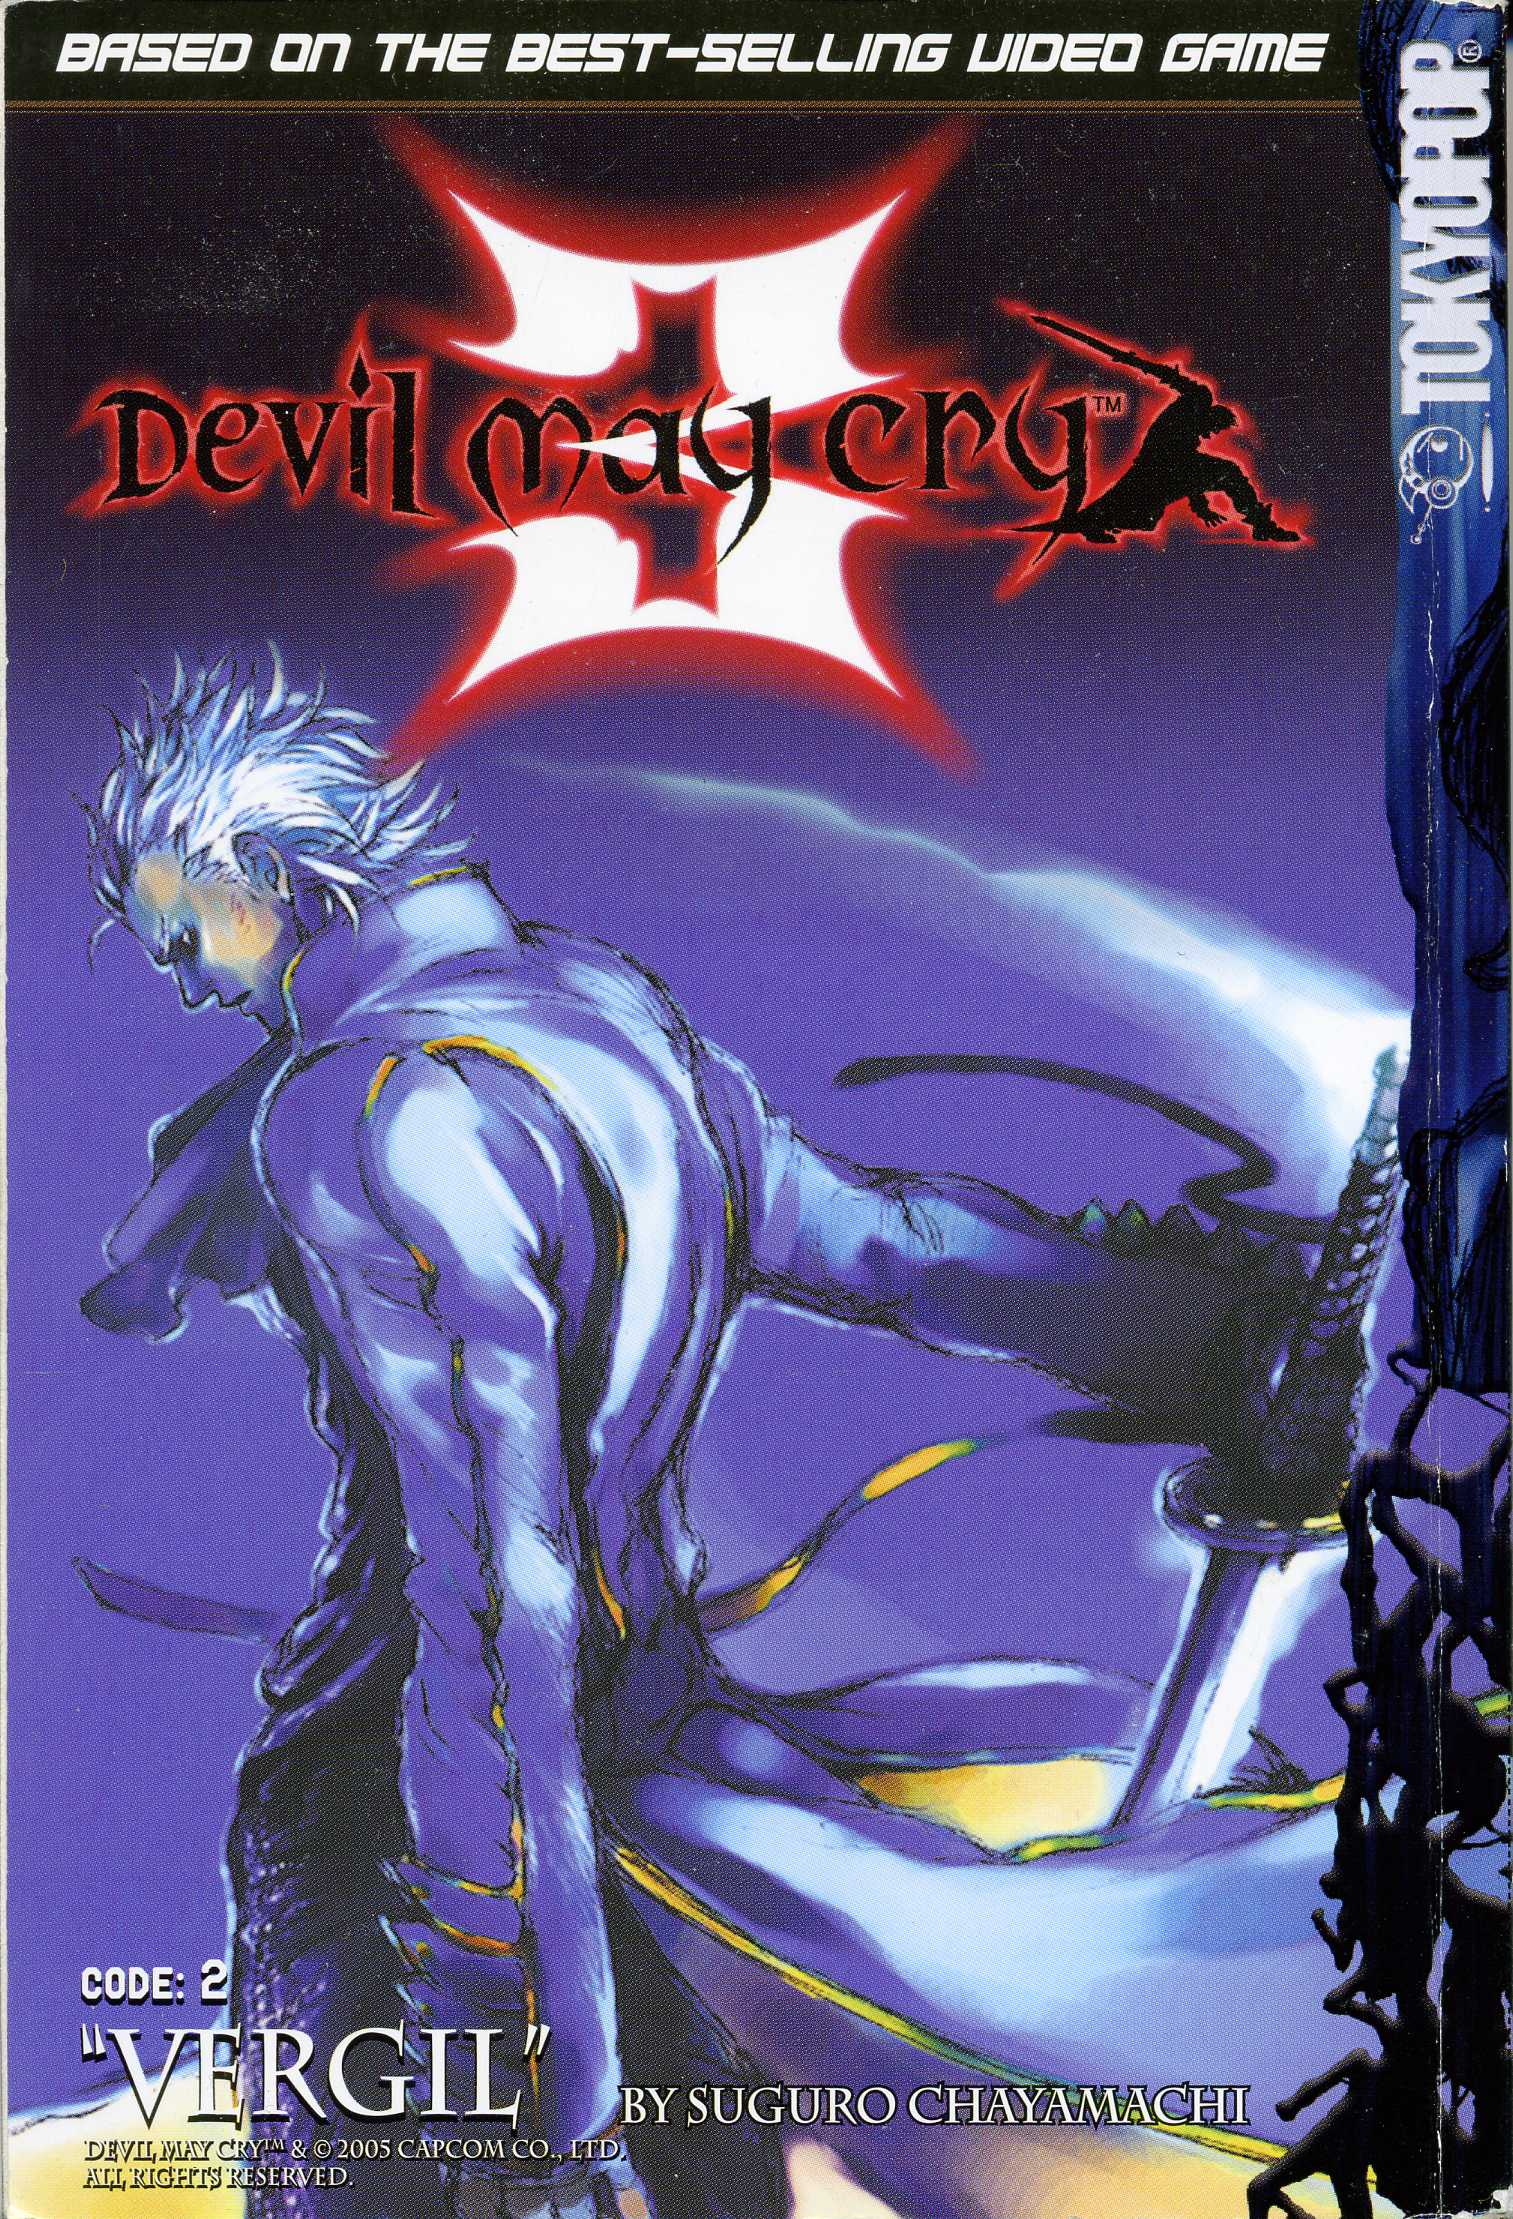 Dmc3 manga vergil